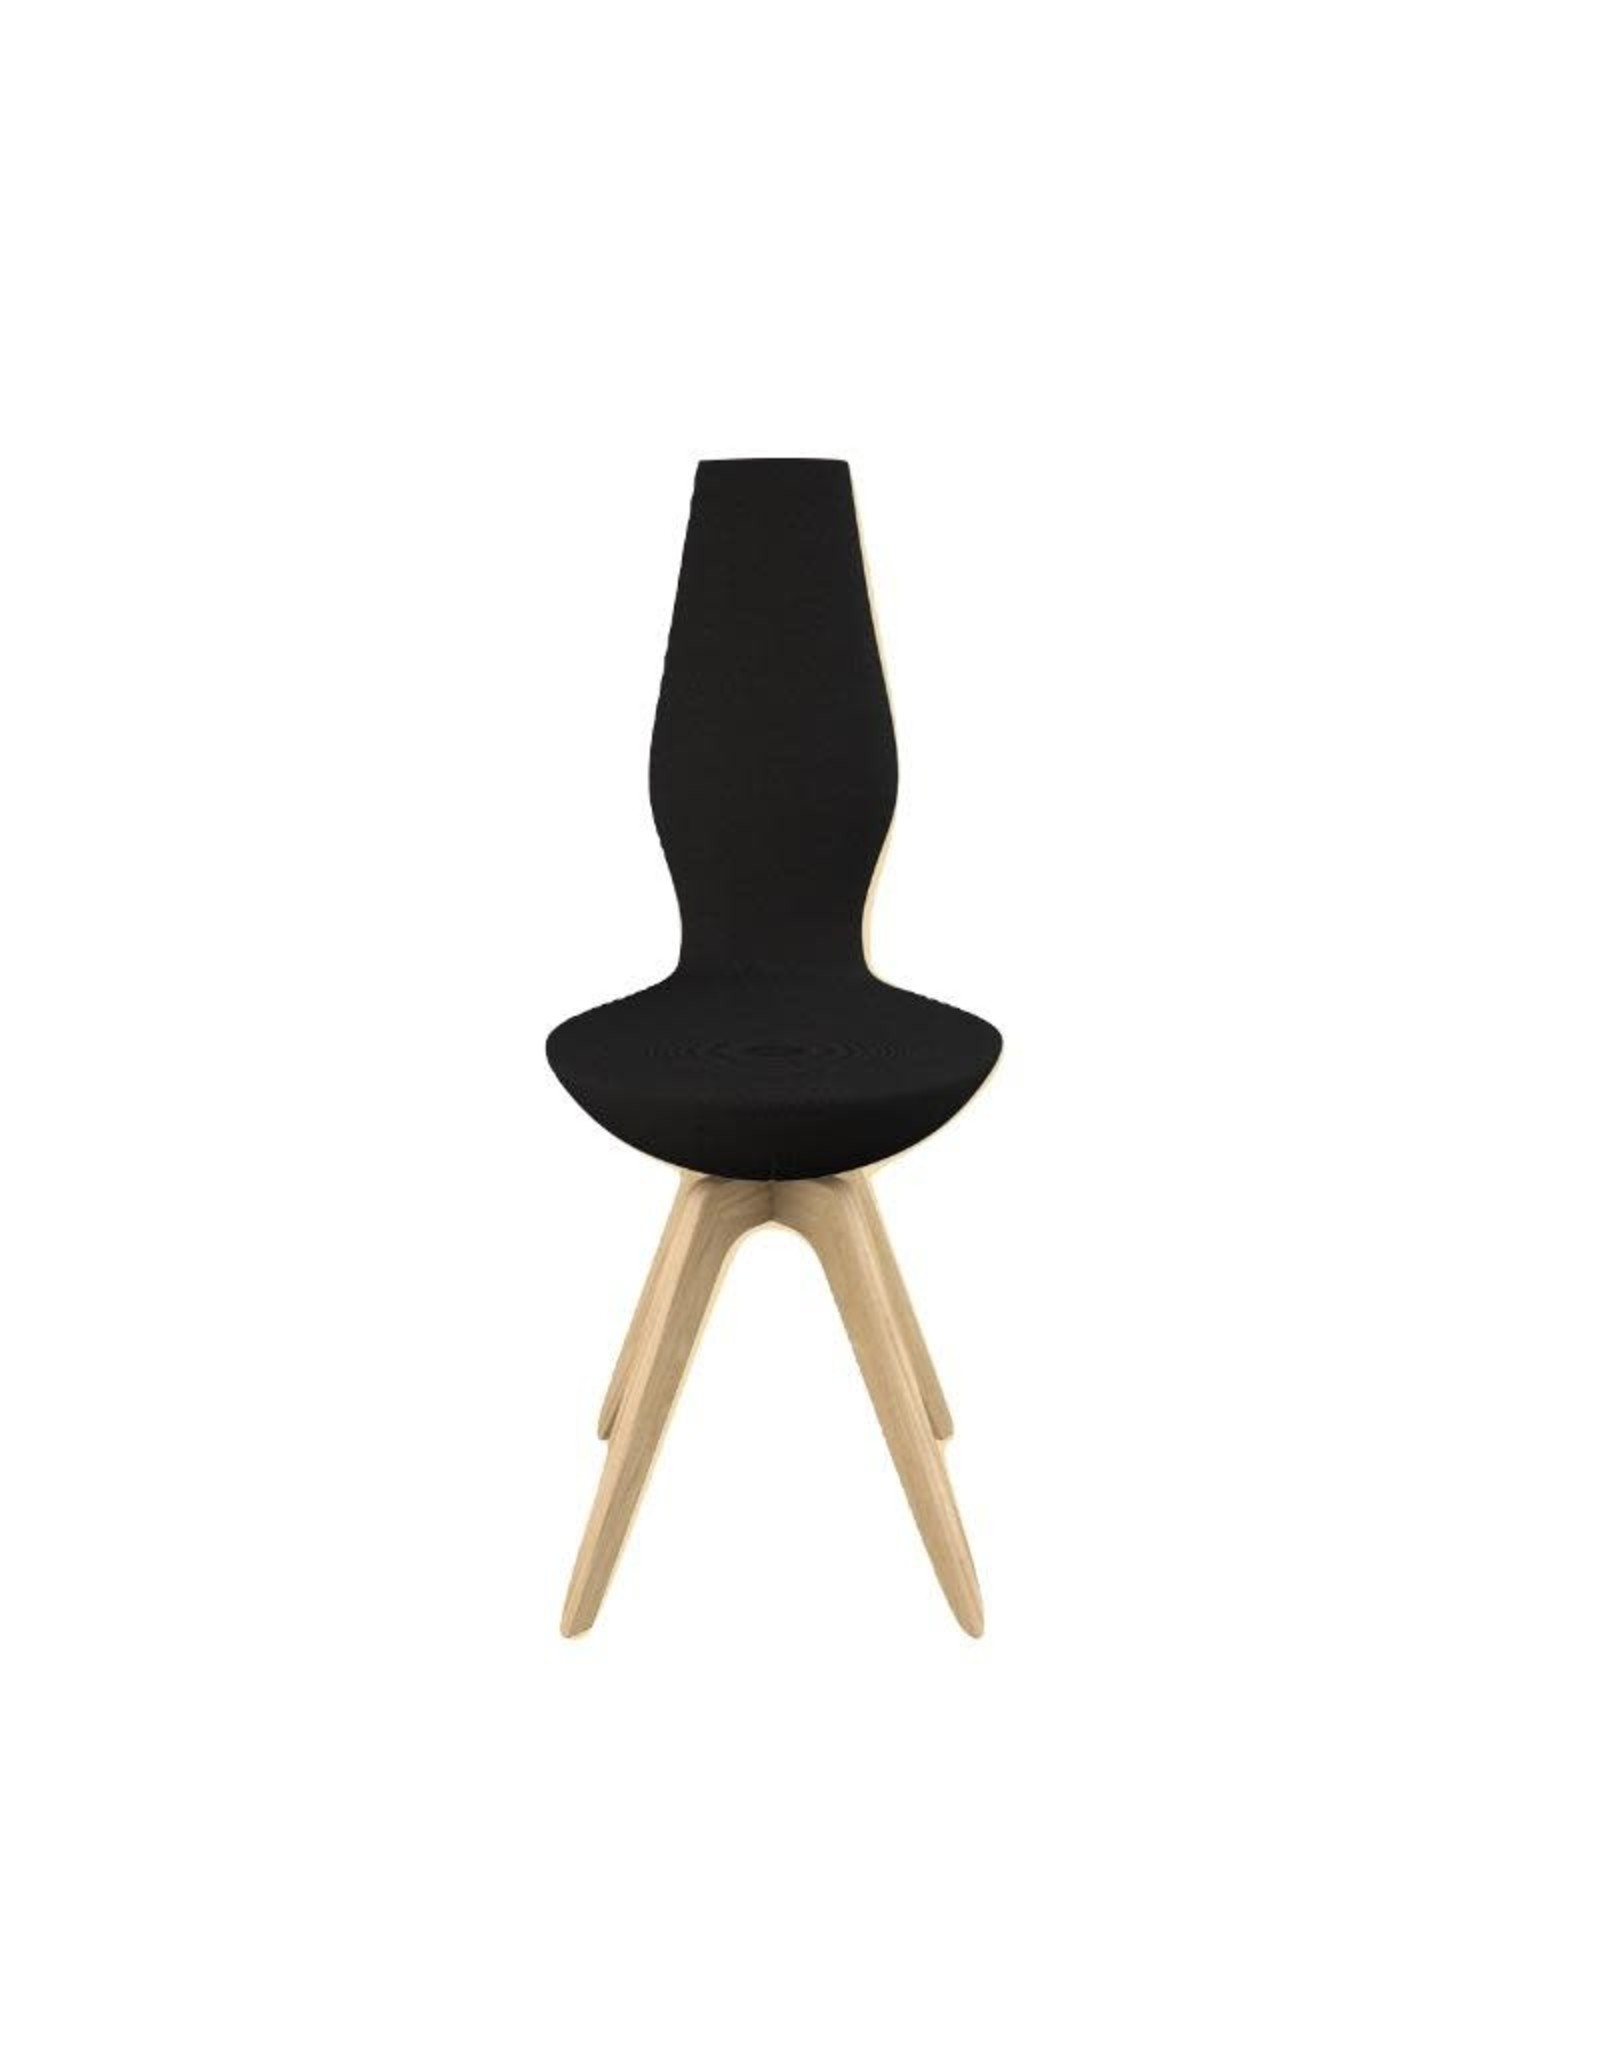 VARIER DATE CHAIR IN STANDARD BLACK FAME FABRIC